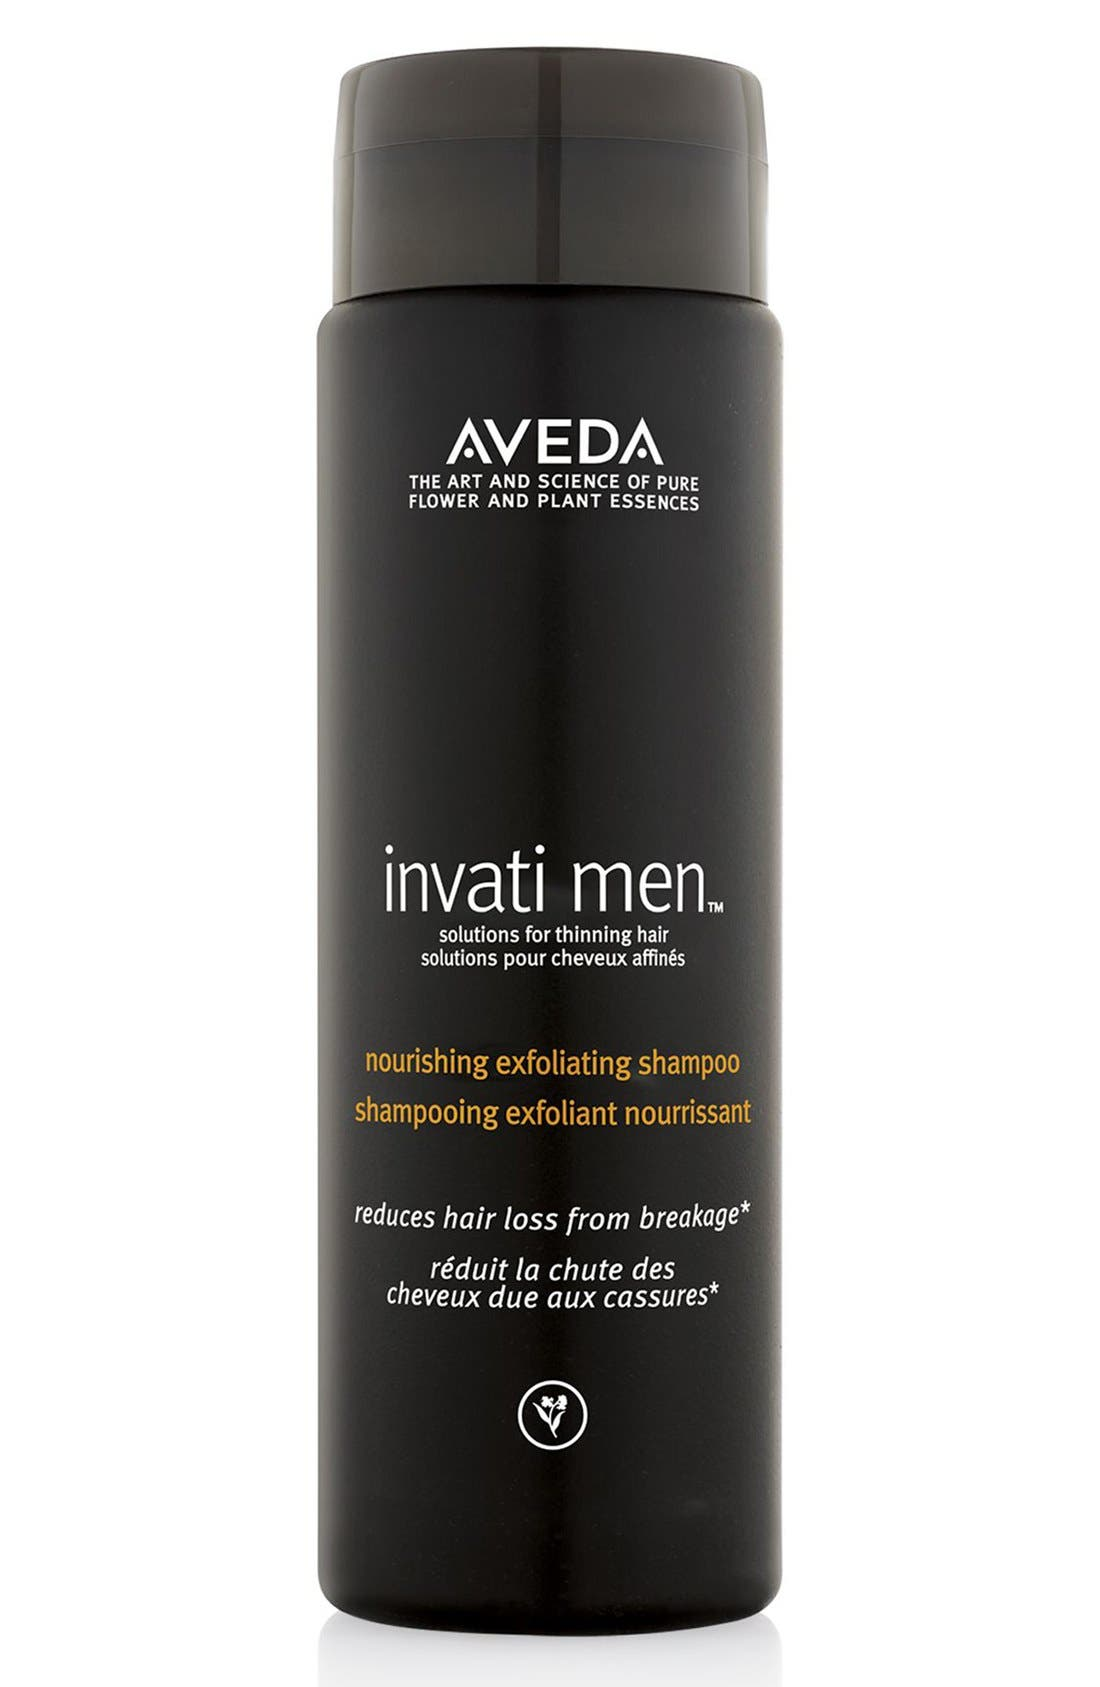 Aveda 'invati men™' Nourishing Exfoliating Shampoo